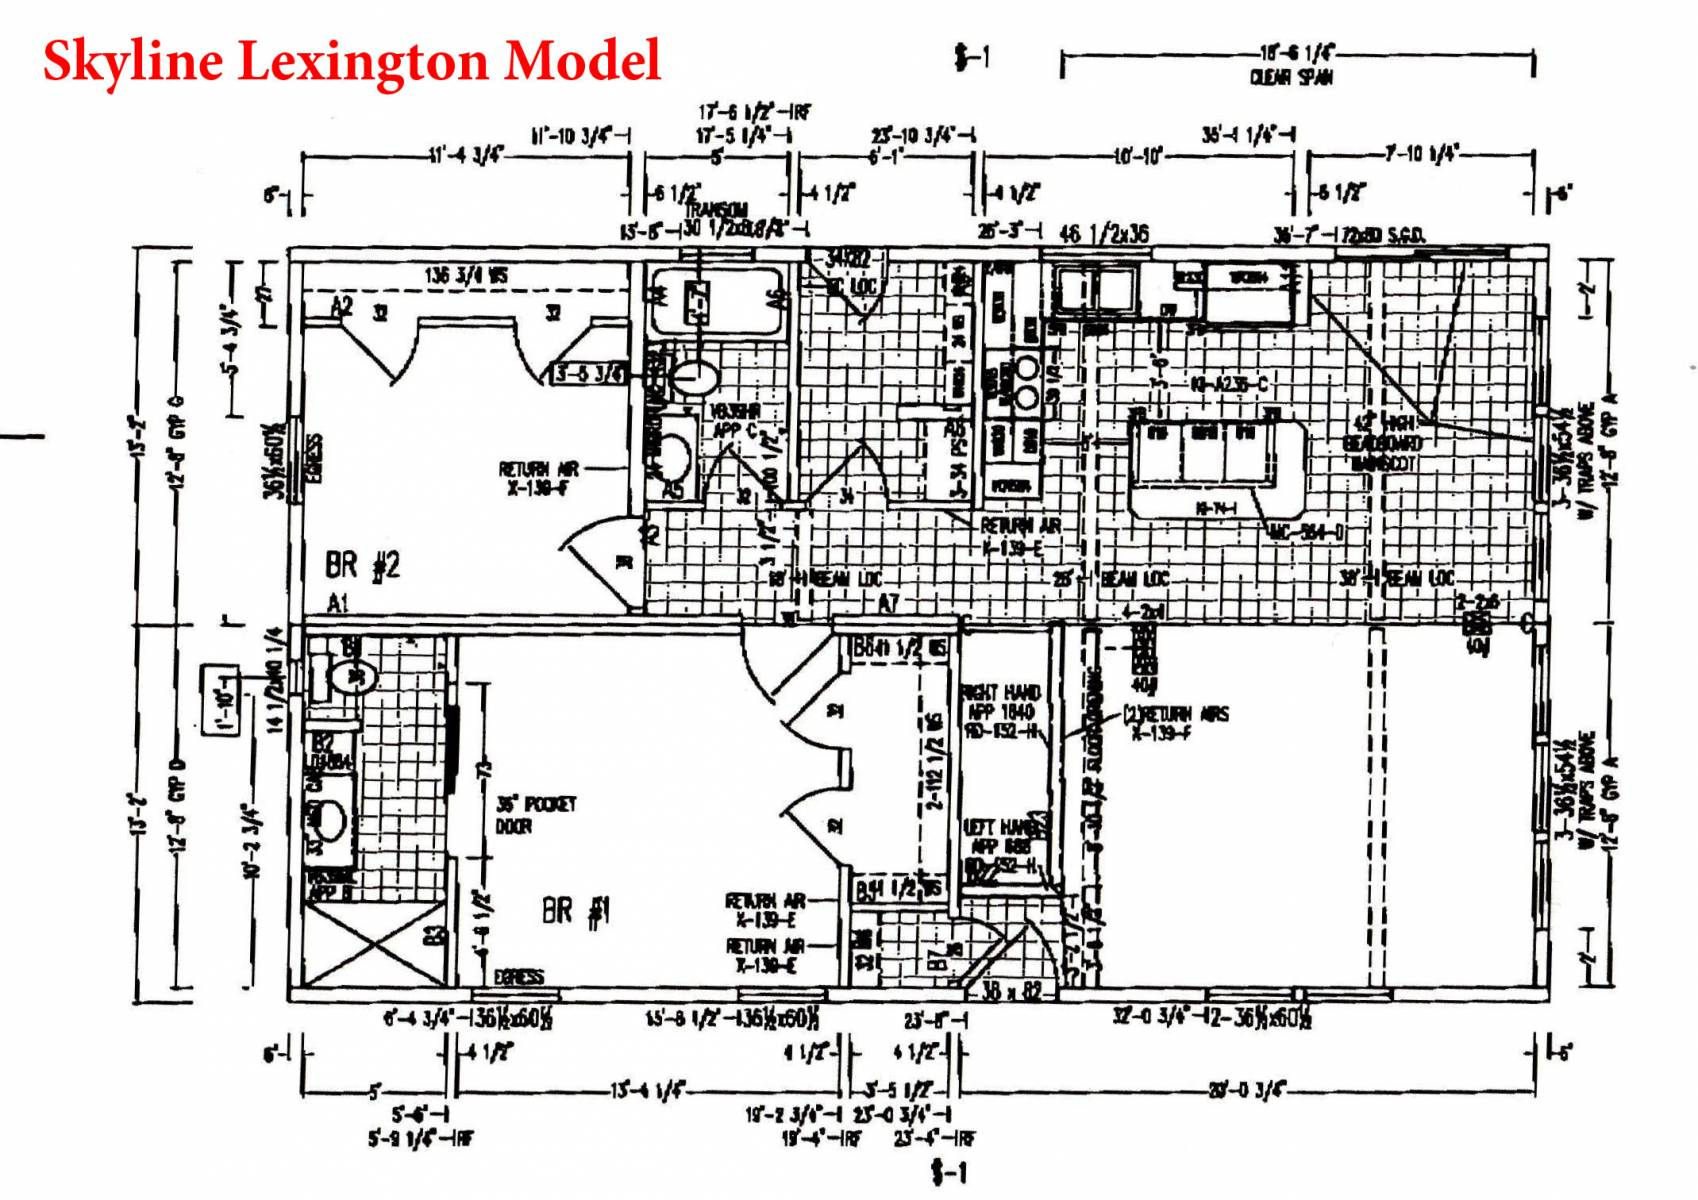 Skyline Lexington Modular or Manufactured Home on double wide mobile home plans, 2 bedroom apartment floor plan, 2 bedroom modular home plans, 2 bedroom steel buildings, 2 bedroom prefab homes, 2 bedroom double wide mobile homes, 14x60 mobile home floor plans, 2 bedroom housing, 2 bedroom manufactured log homes, 2 bedroom used mobile homes, earthship home floor plans, 2 bedroom mobile home designs, solitaire single wide floor plans, 1975 mobile home floor plans, 3 bdrm double wide home floor plans, four bedroom home floor plans, 3 bdrm 2 bath modular farmhouse floor plans, one-bedroom studio floor plans, 2 bedroom trailers, single wide homes floor plans,